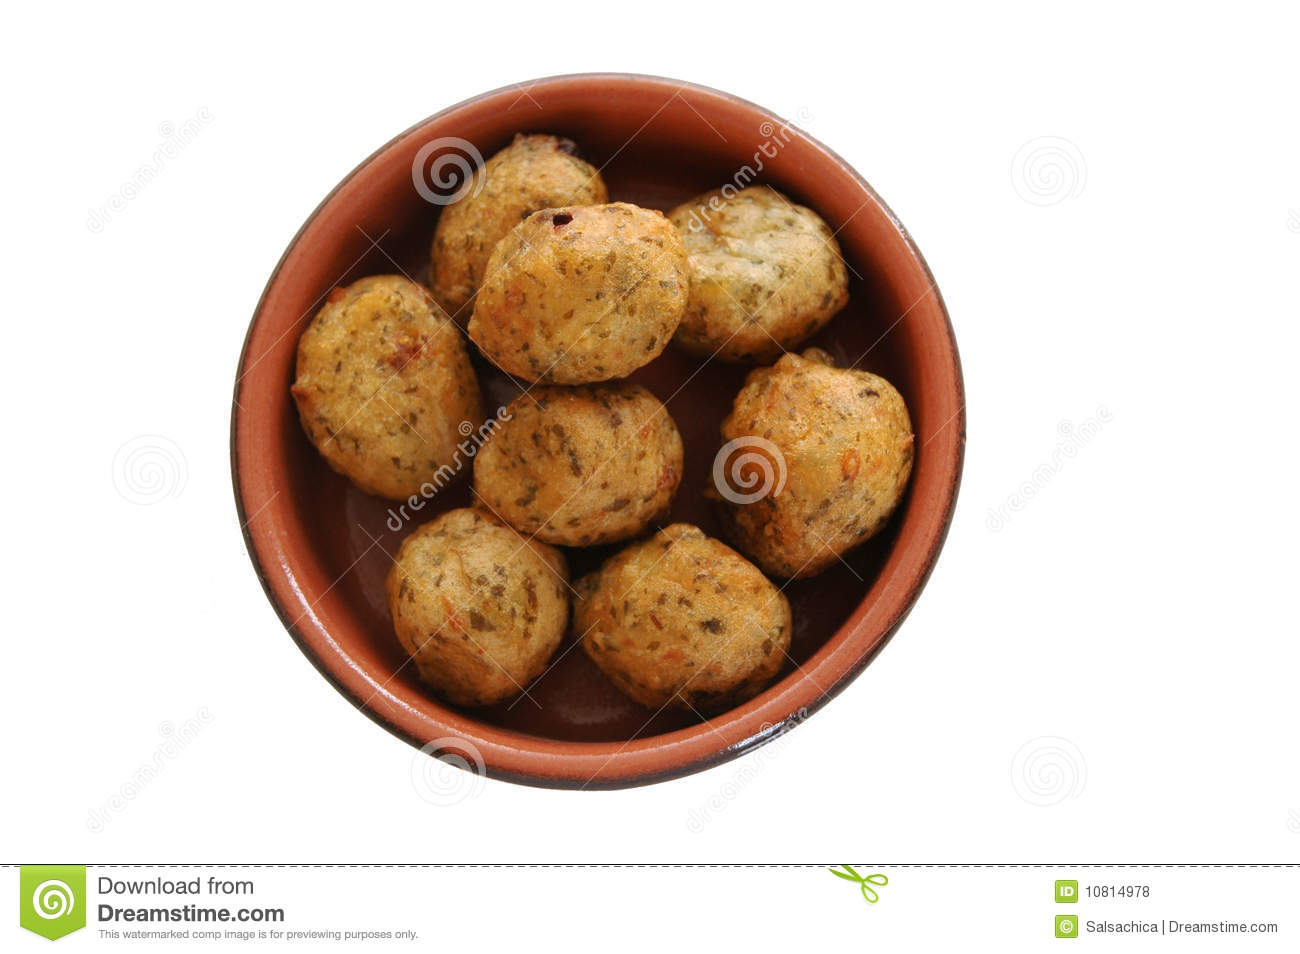 Portuguese Cod Fritters Royalty Free Stock Photos - Image: 10814978